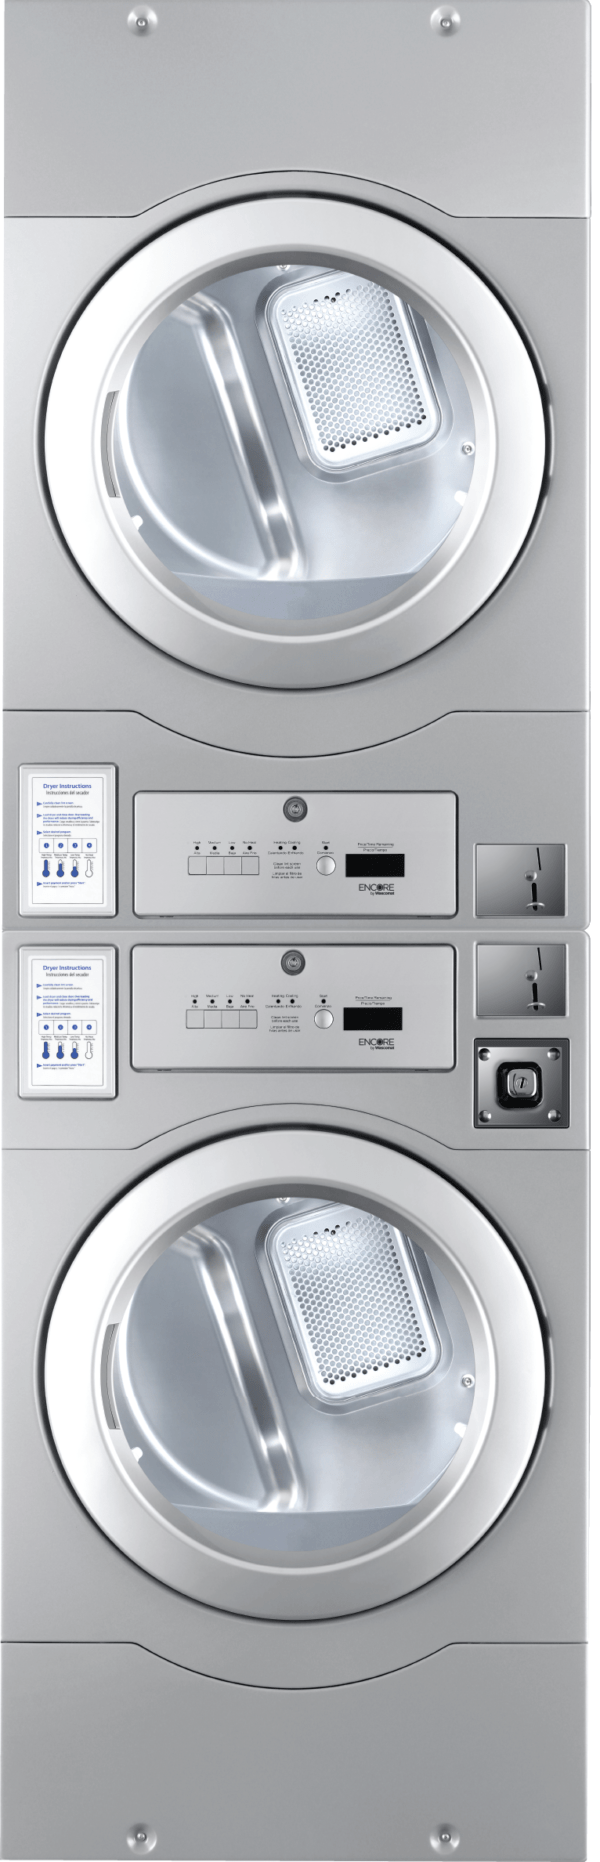 Encore vended stack dryer product image